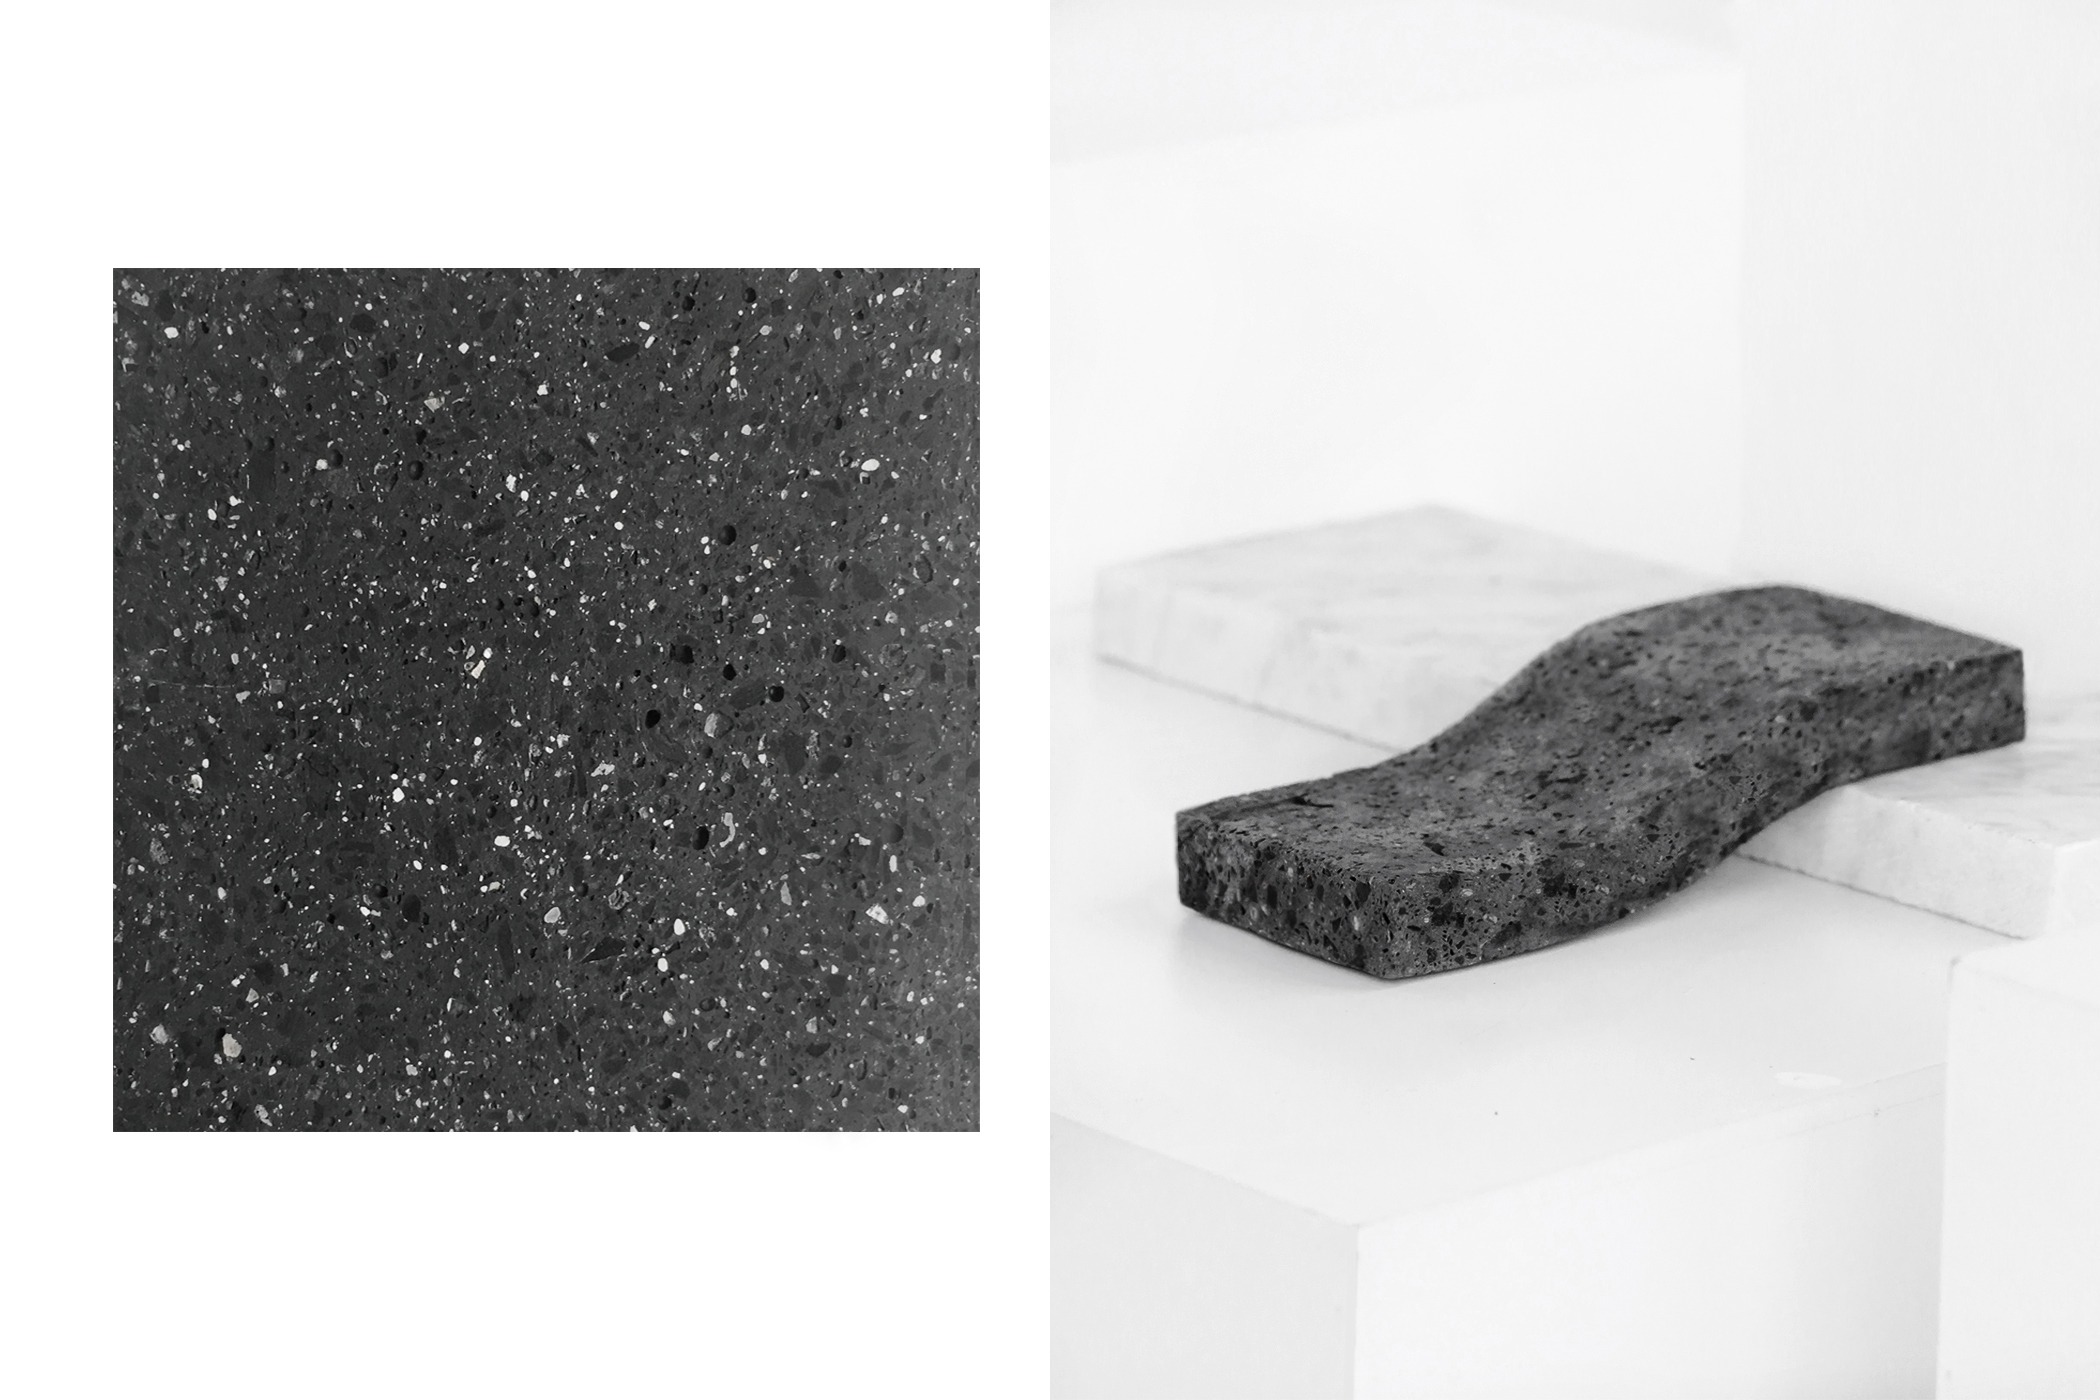 "Inspired by the emblematic basaltic stone, better known as ""lava stone"", we developed MAGMA 04 ®; A liquid stone material that enhances and defies the nature of stone.  This beautiful material looks and feels the same as lava stone. The formula is conceived in a semi-liquid state allowing the material to be casted in a mold to create complex, precise and fast production products. After casted you can cut it, perforate it and engrave it.  MAGMA 04® is an adaptable and evolving material. The formula adapts to the specifications needed by a product and industry. Applications include architecture (interiors and exterior tiles and mosaics) furniture, products and decor and others to discover."